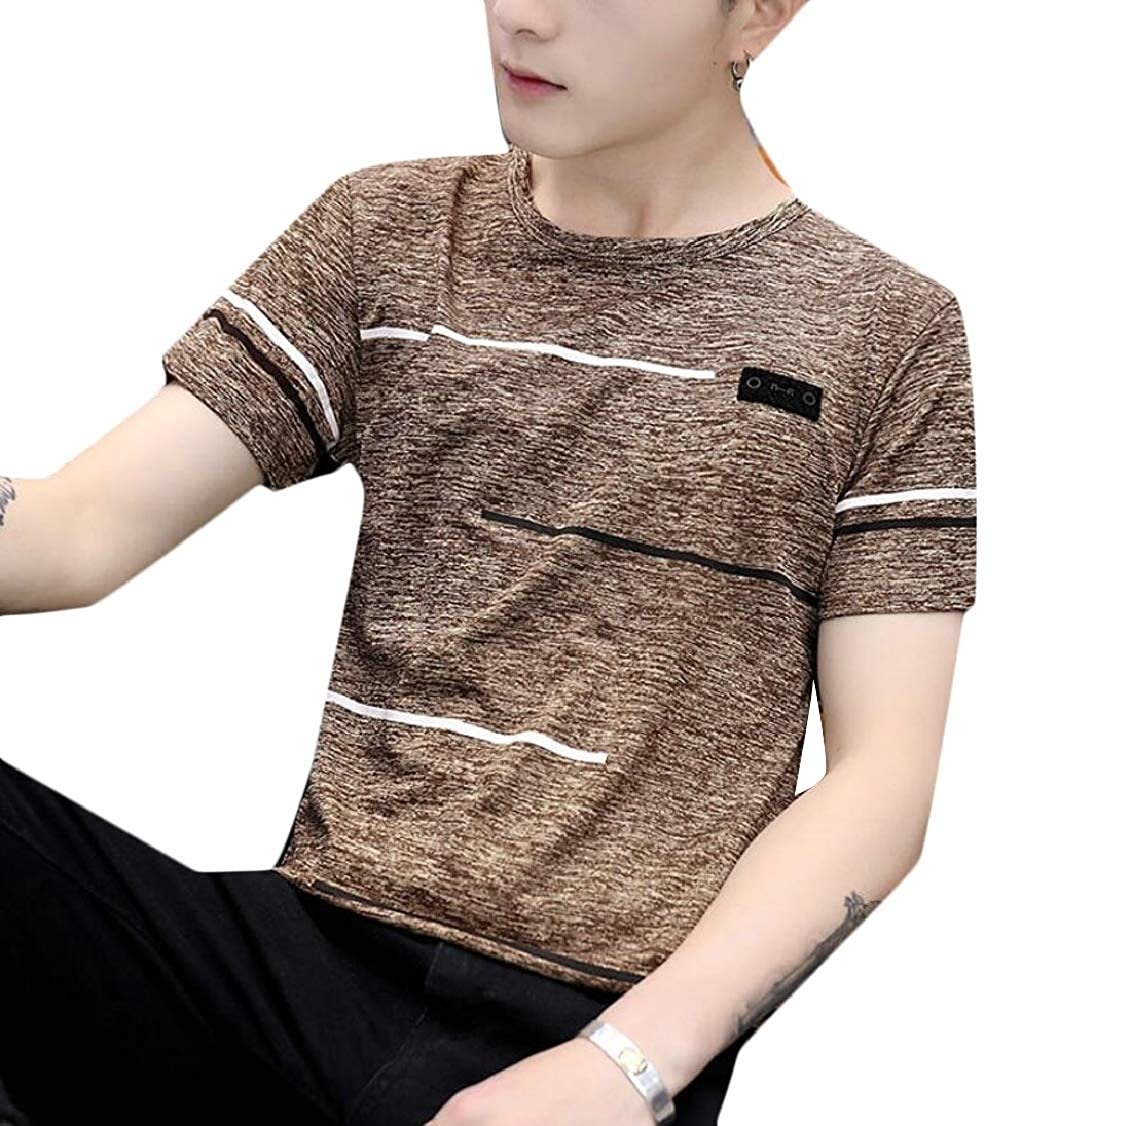 Hokny TD Mens Tops Breathable Printing Solid Crewneck Short Sleeve T-Shirt